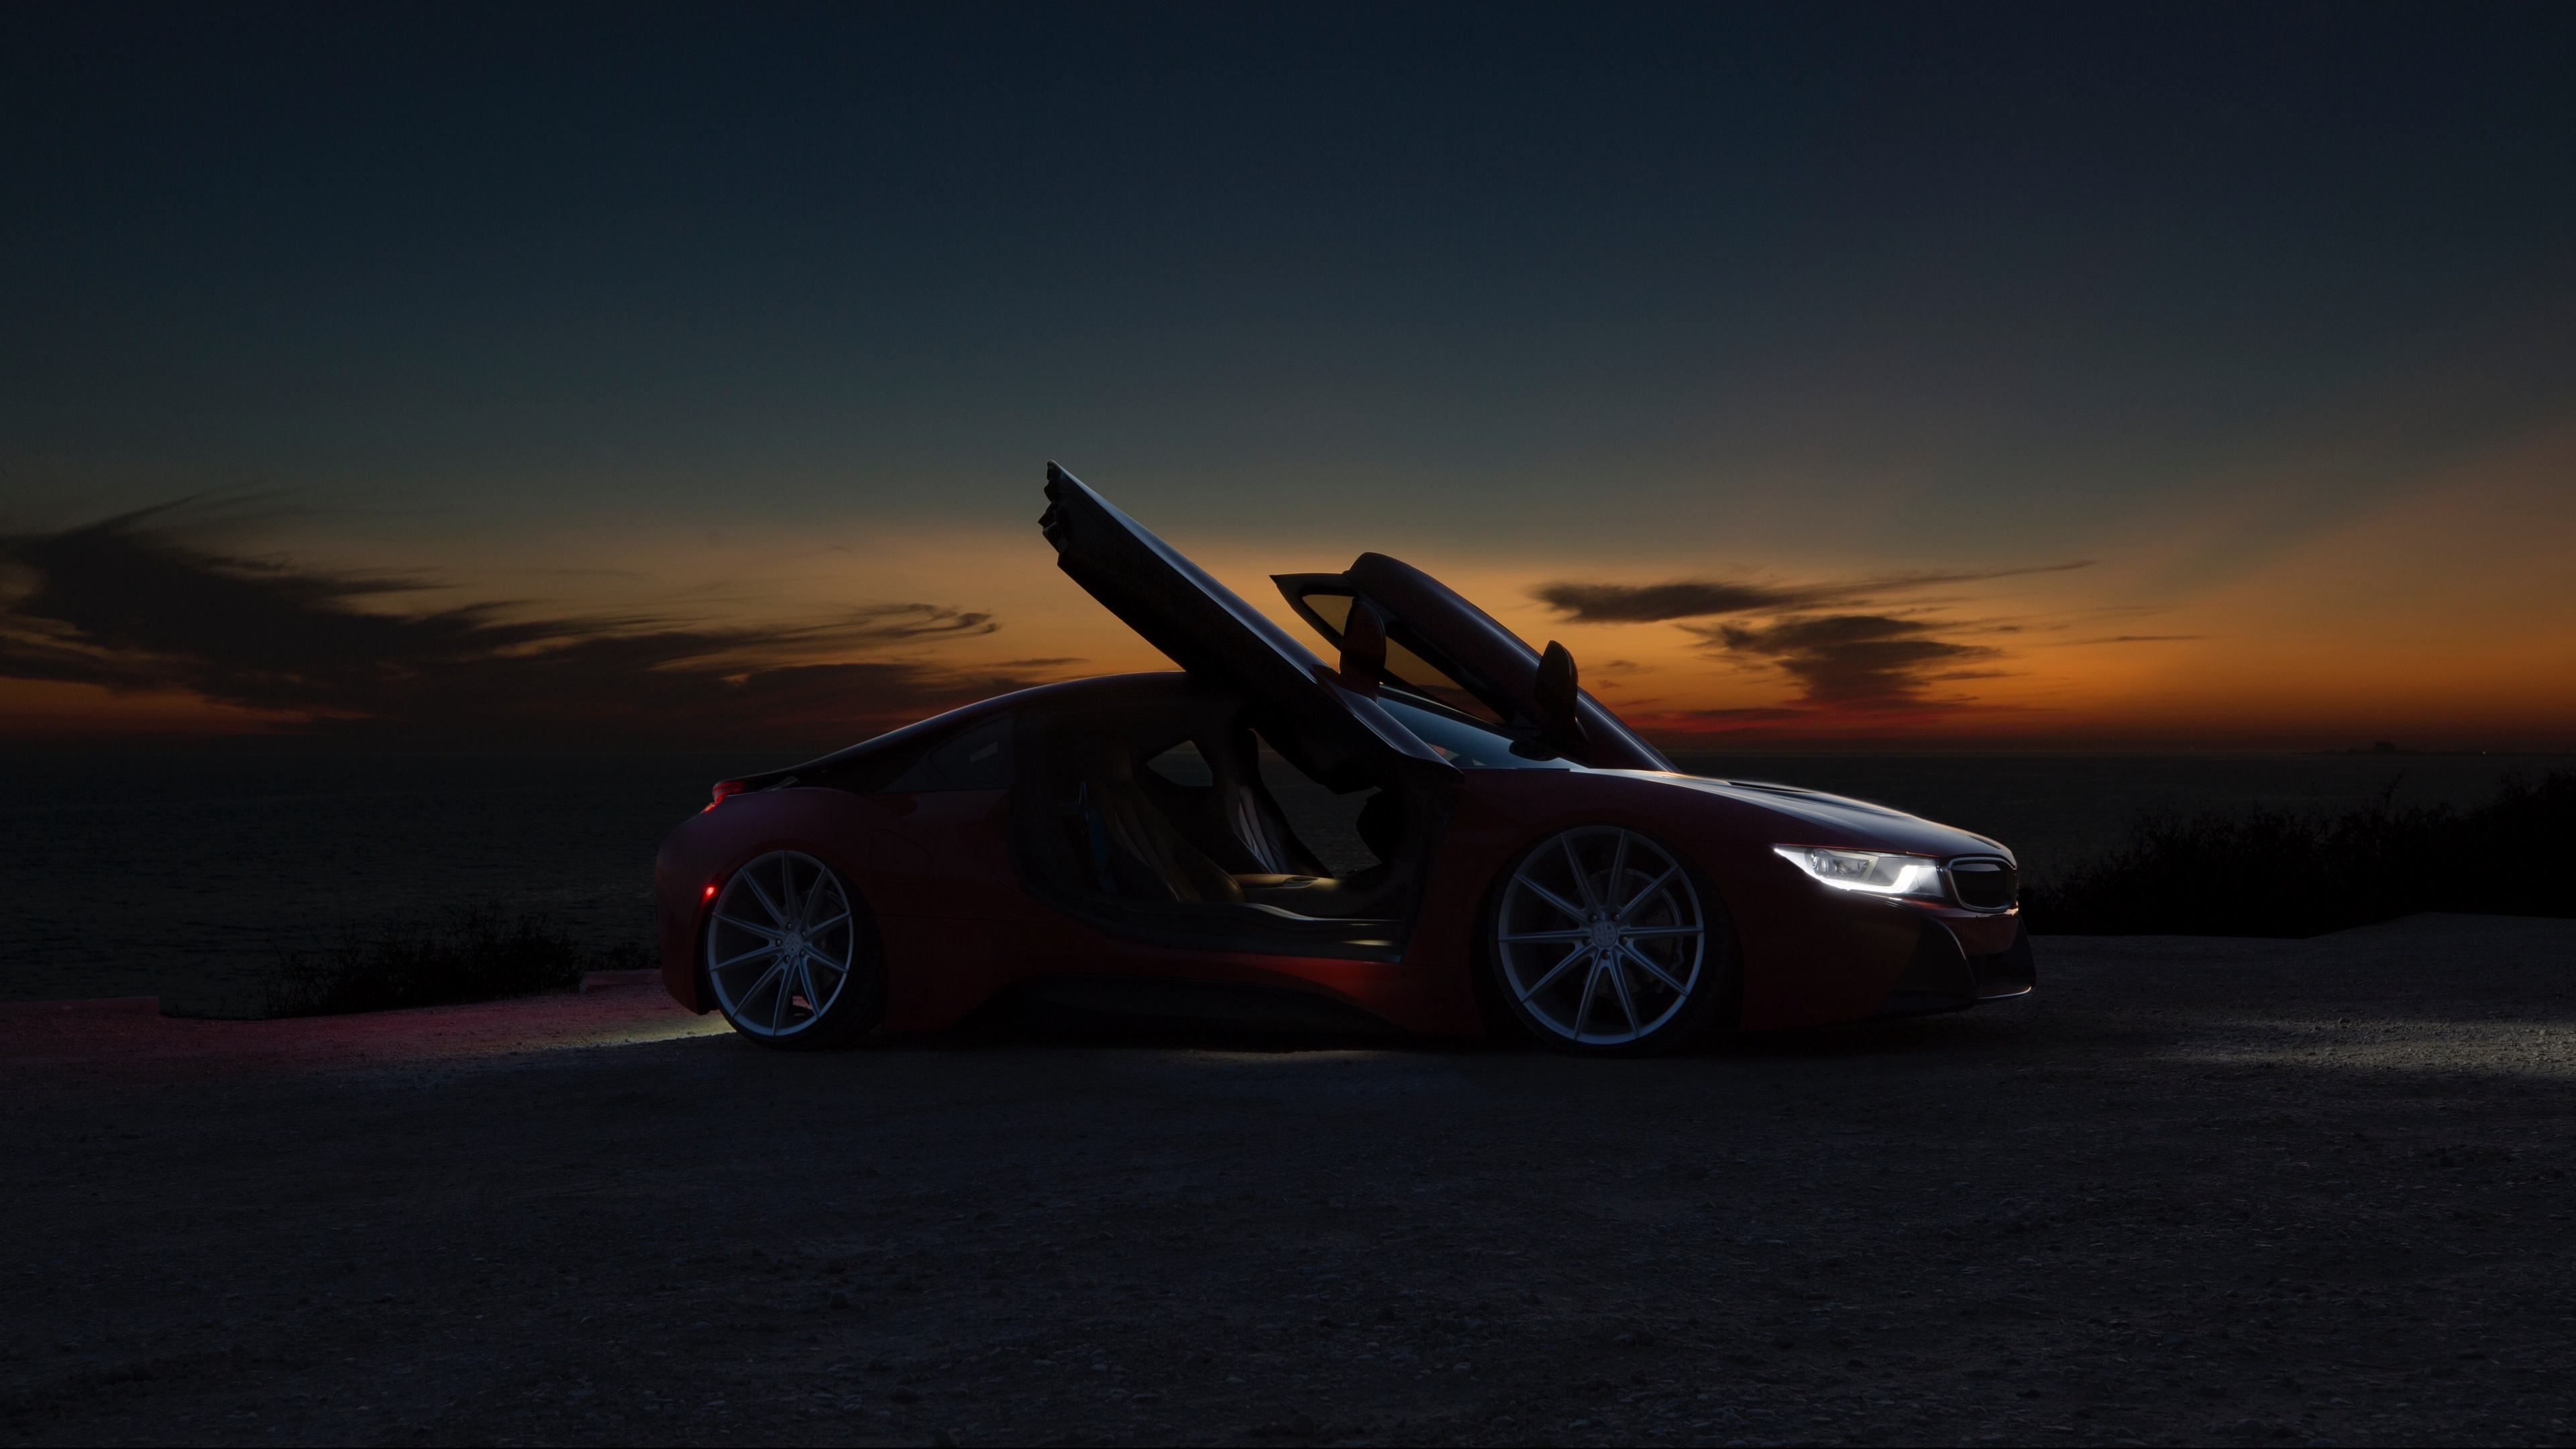 McLaren MP4-12C wallpaper